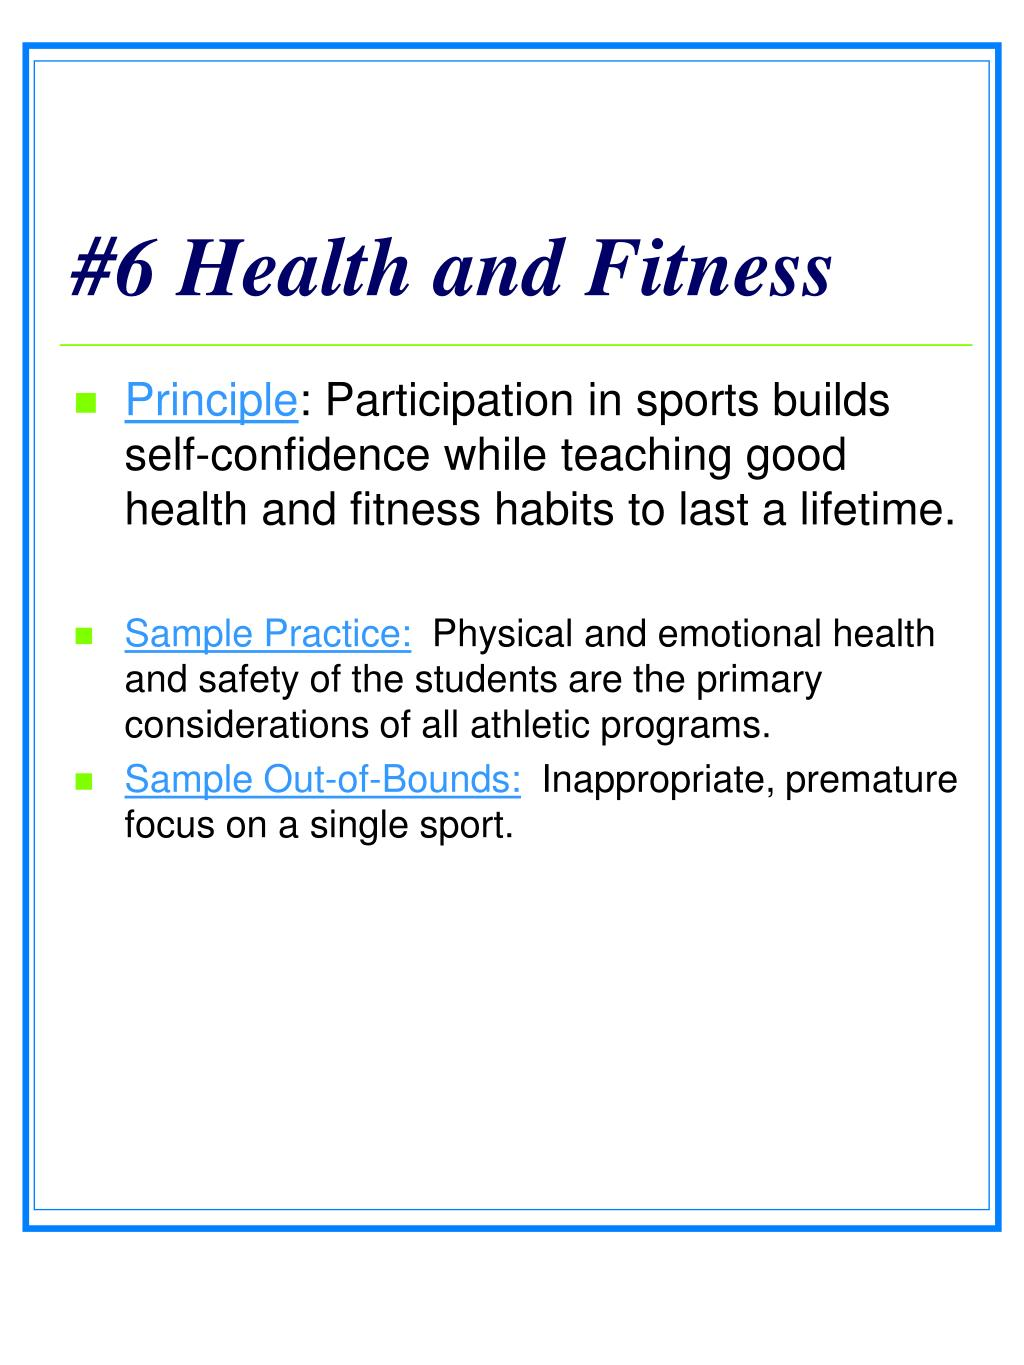 #6 Health and Fitness